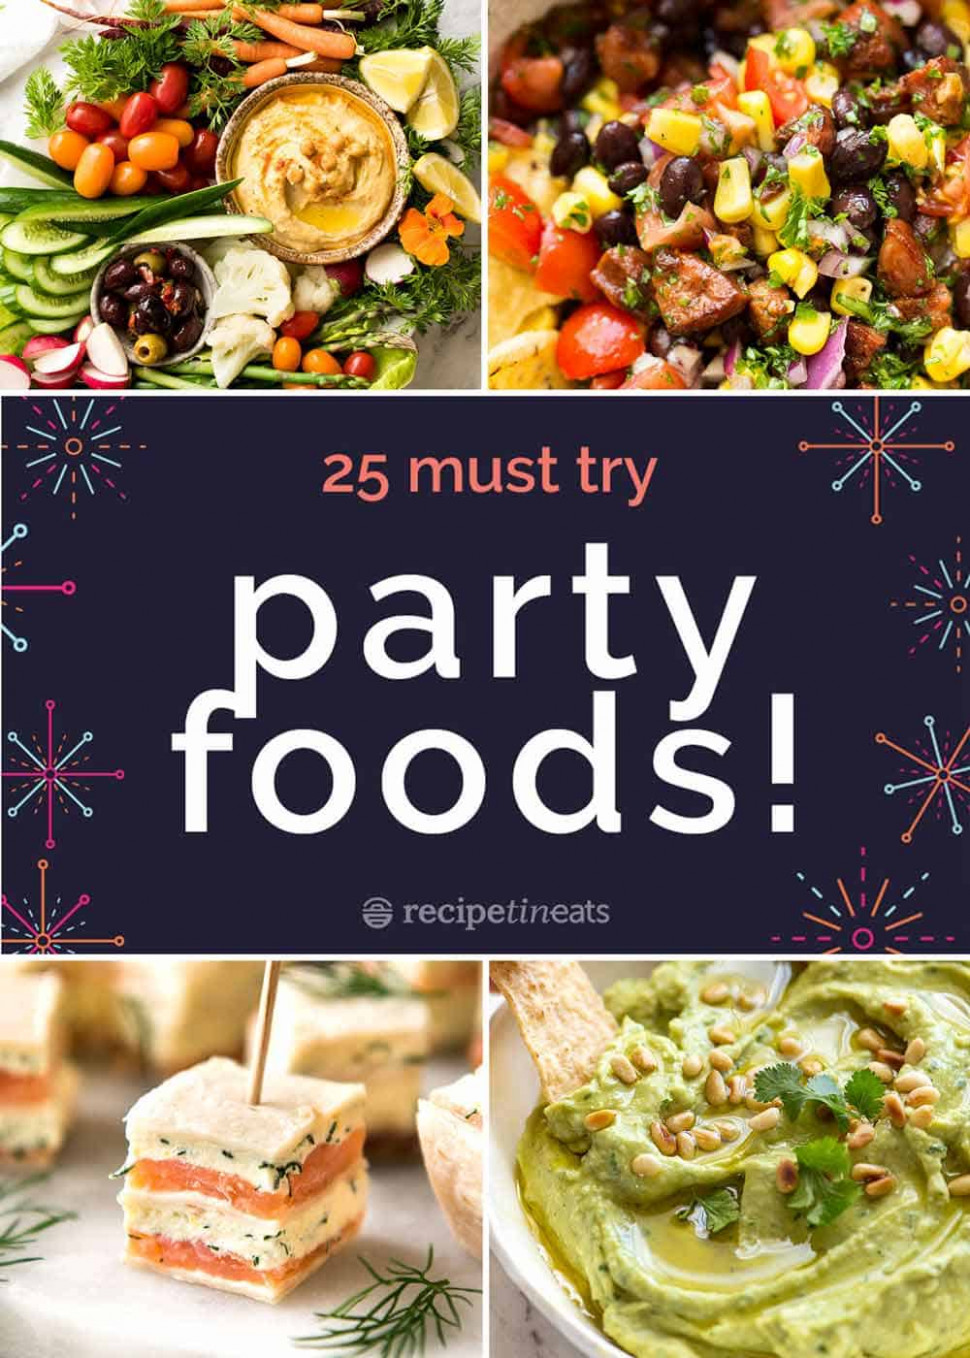 10 BEST Party Food Recipes! - unique food recipes